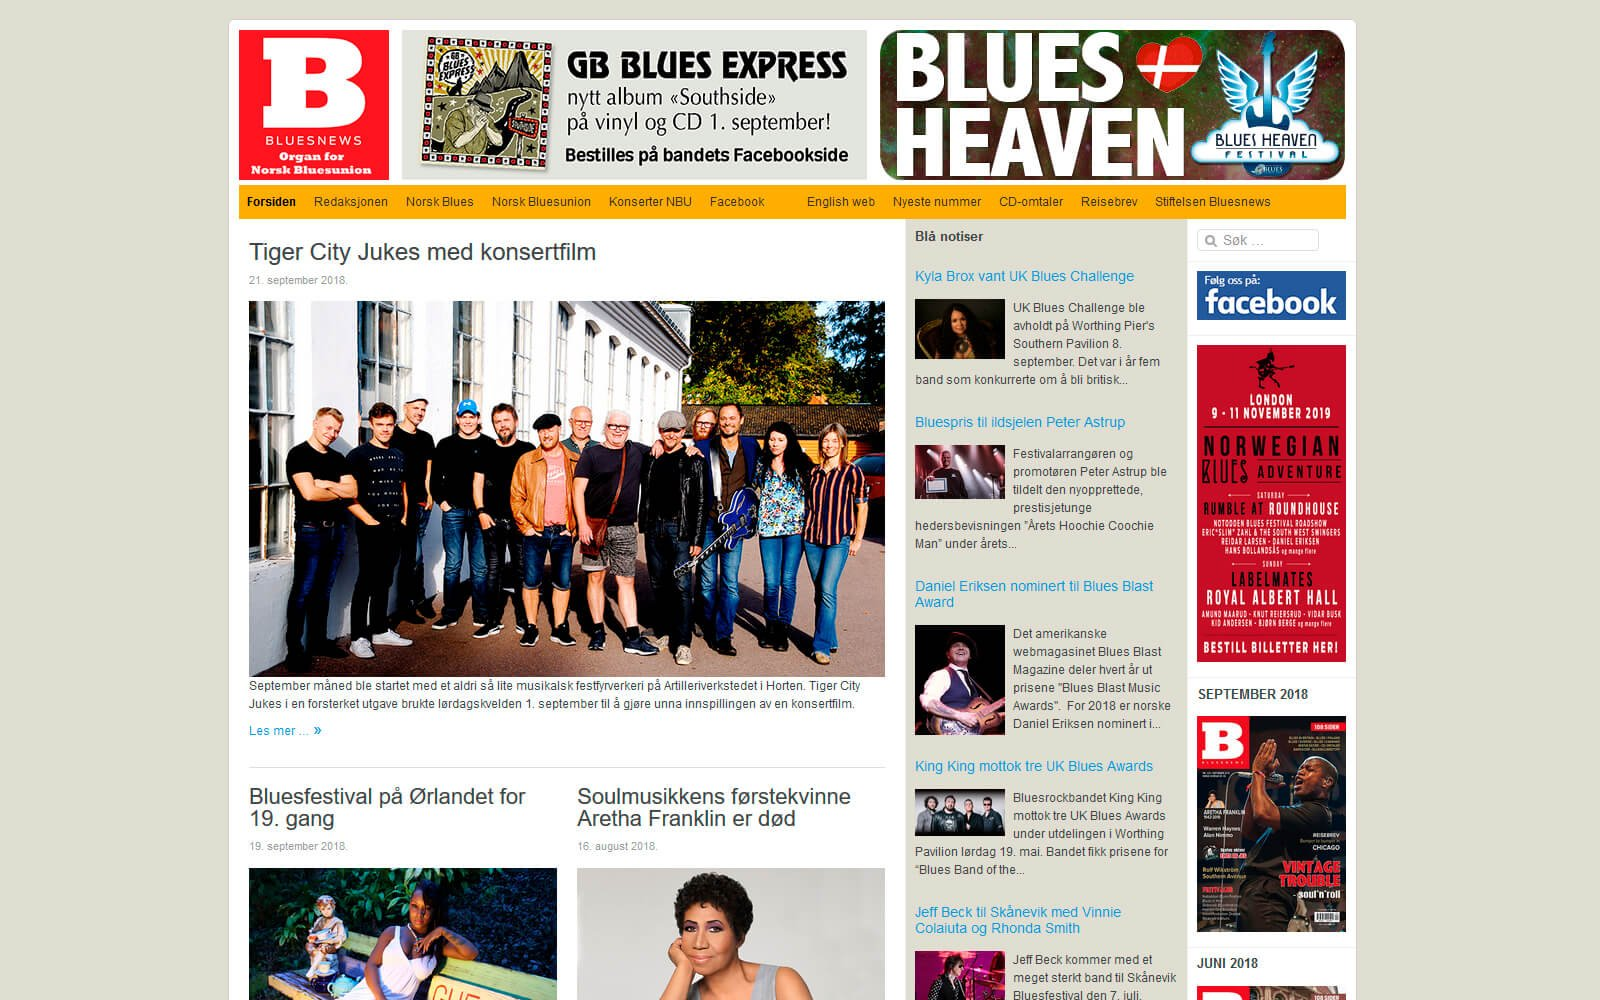 Bluesnews webside